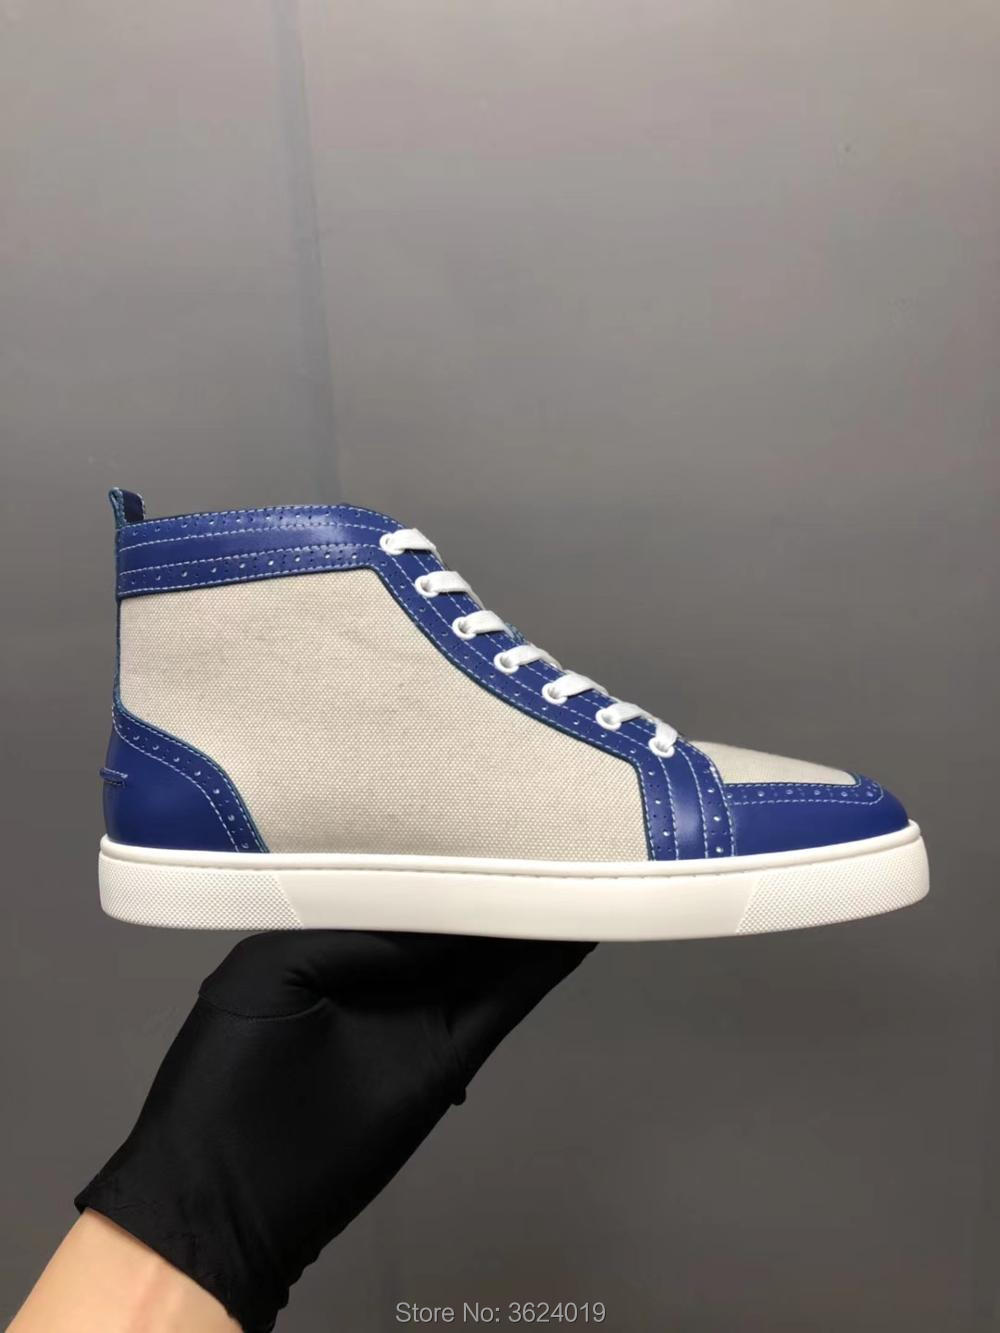 84abdb3adfab High Cut shoes clandgz Men White With Blue Denim Lace Up Red bottom Shoe  Sneakers Leather Loafers 2018 Footwear Spring Autumn-in Men s Casual Shoes  from ...